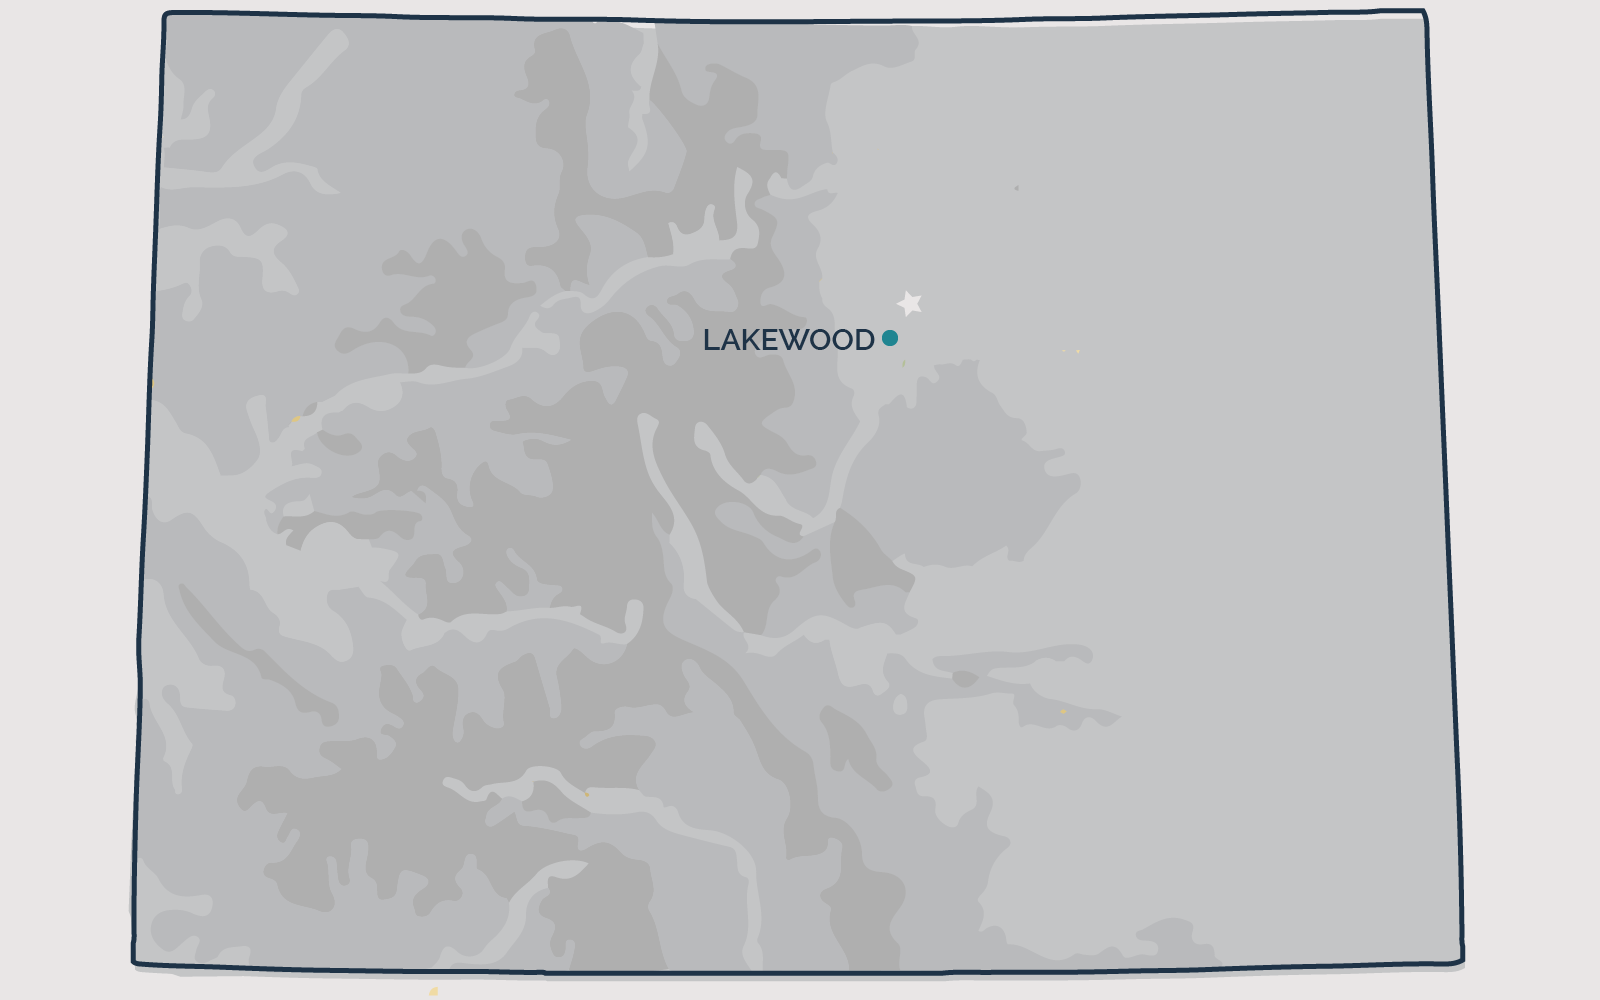 LAKEWOOD, Colorado - Your health and satisfaction are important to us. We are located in Littleton, Colorado and are pleased to provide our professional, honest, and affordable radon testing and mitigation services to happy and satisfied customers all along the front range of our beautiful State of Colorado.